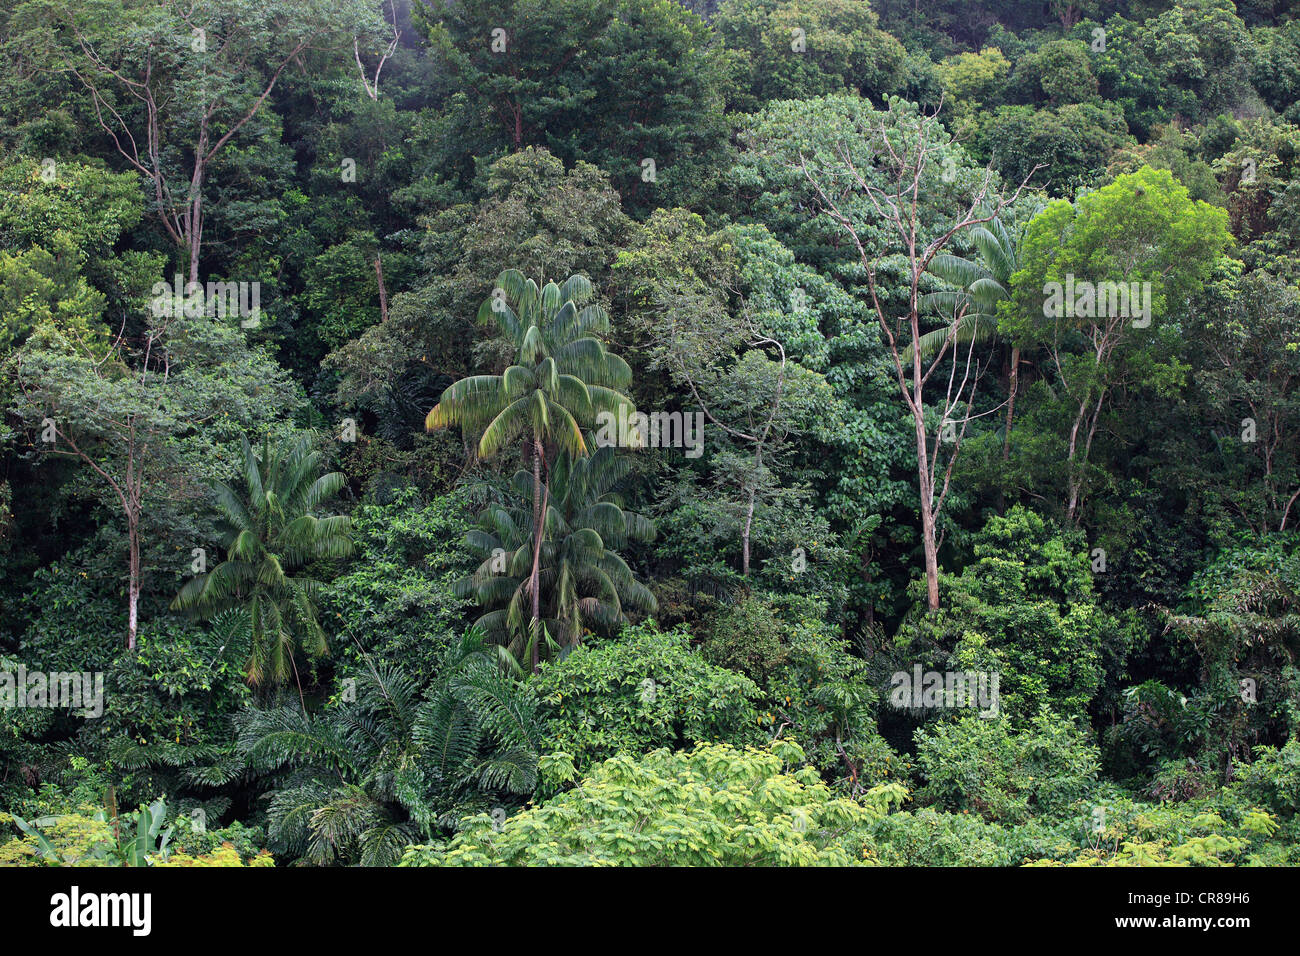 Think, southeast asian rain forest 3012 that necessary